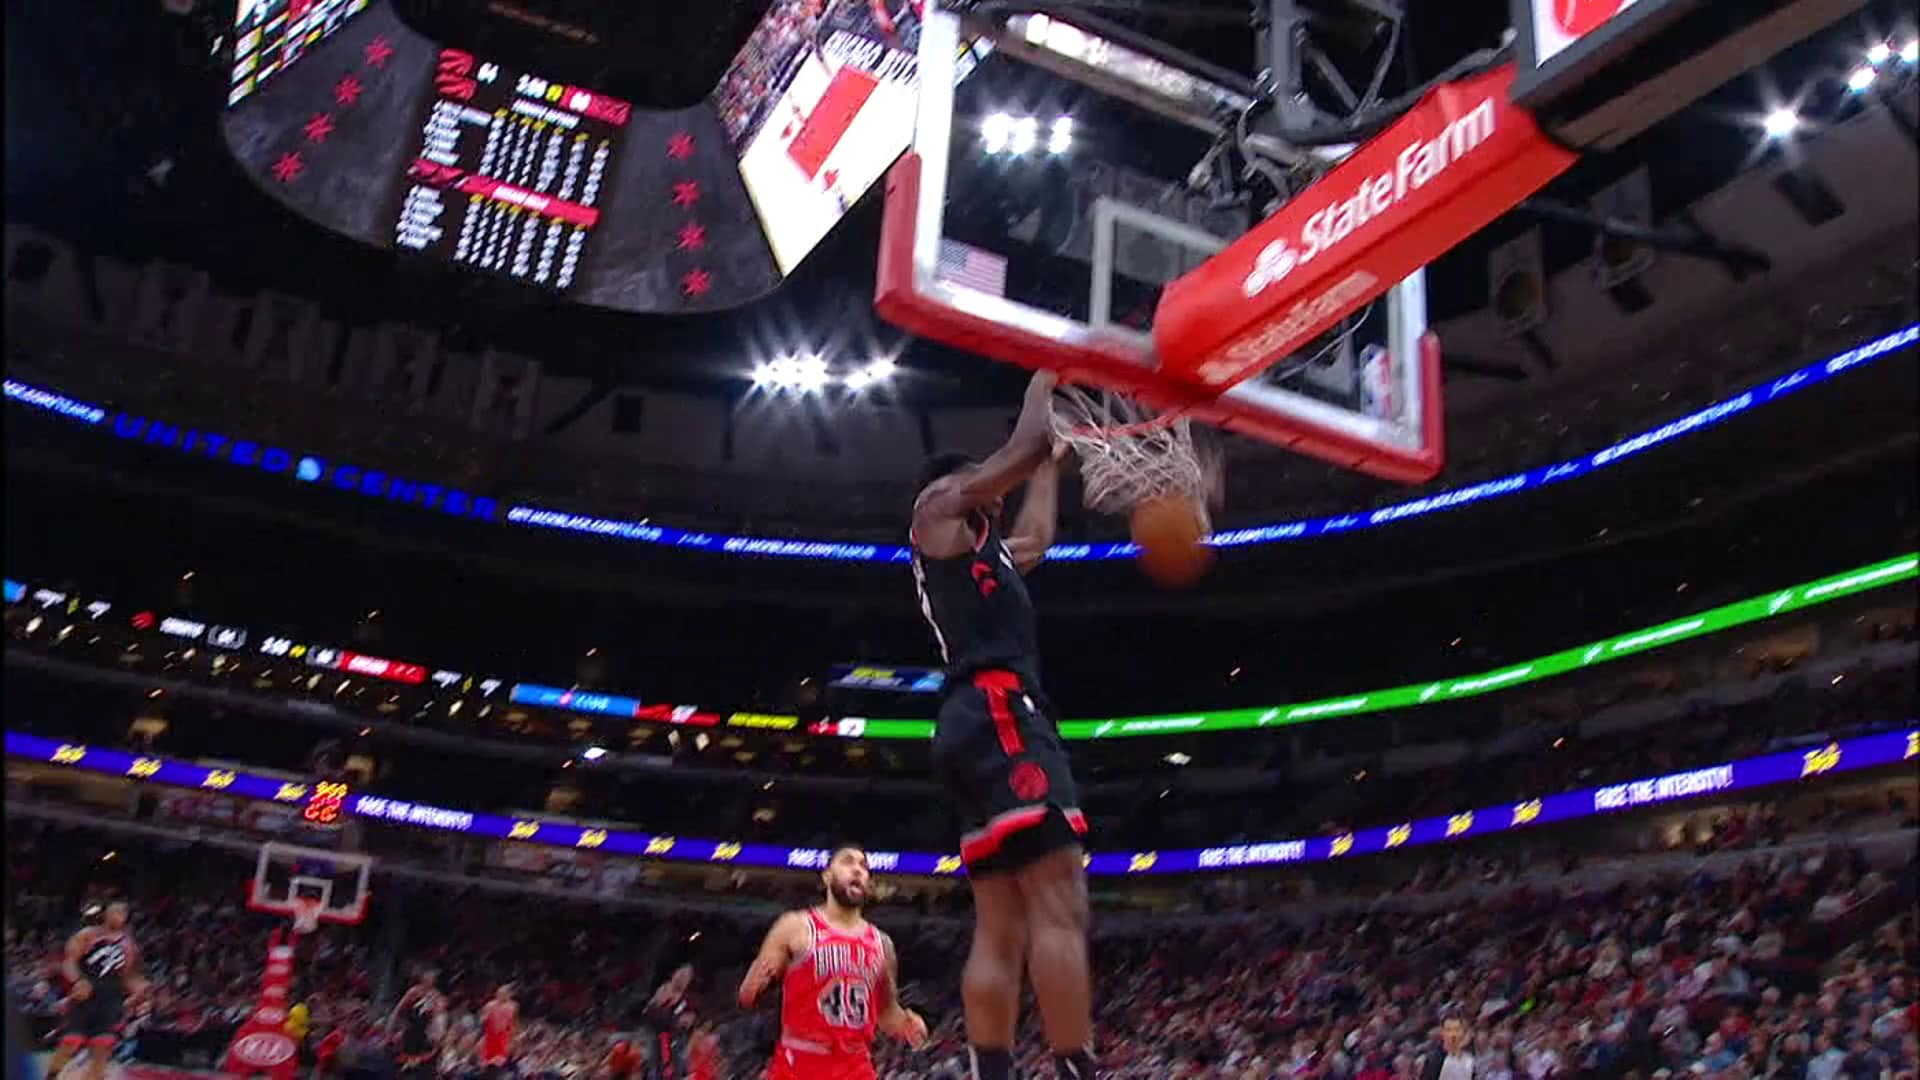 Raptors Highlights: Anunoby Dunk - December 9, 2019